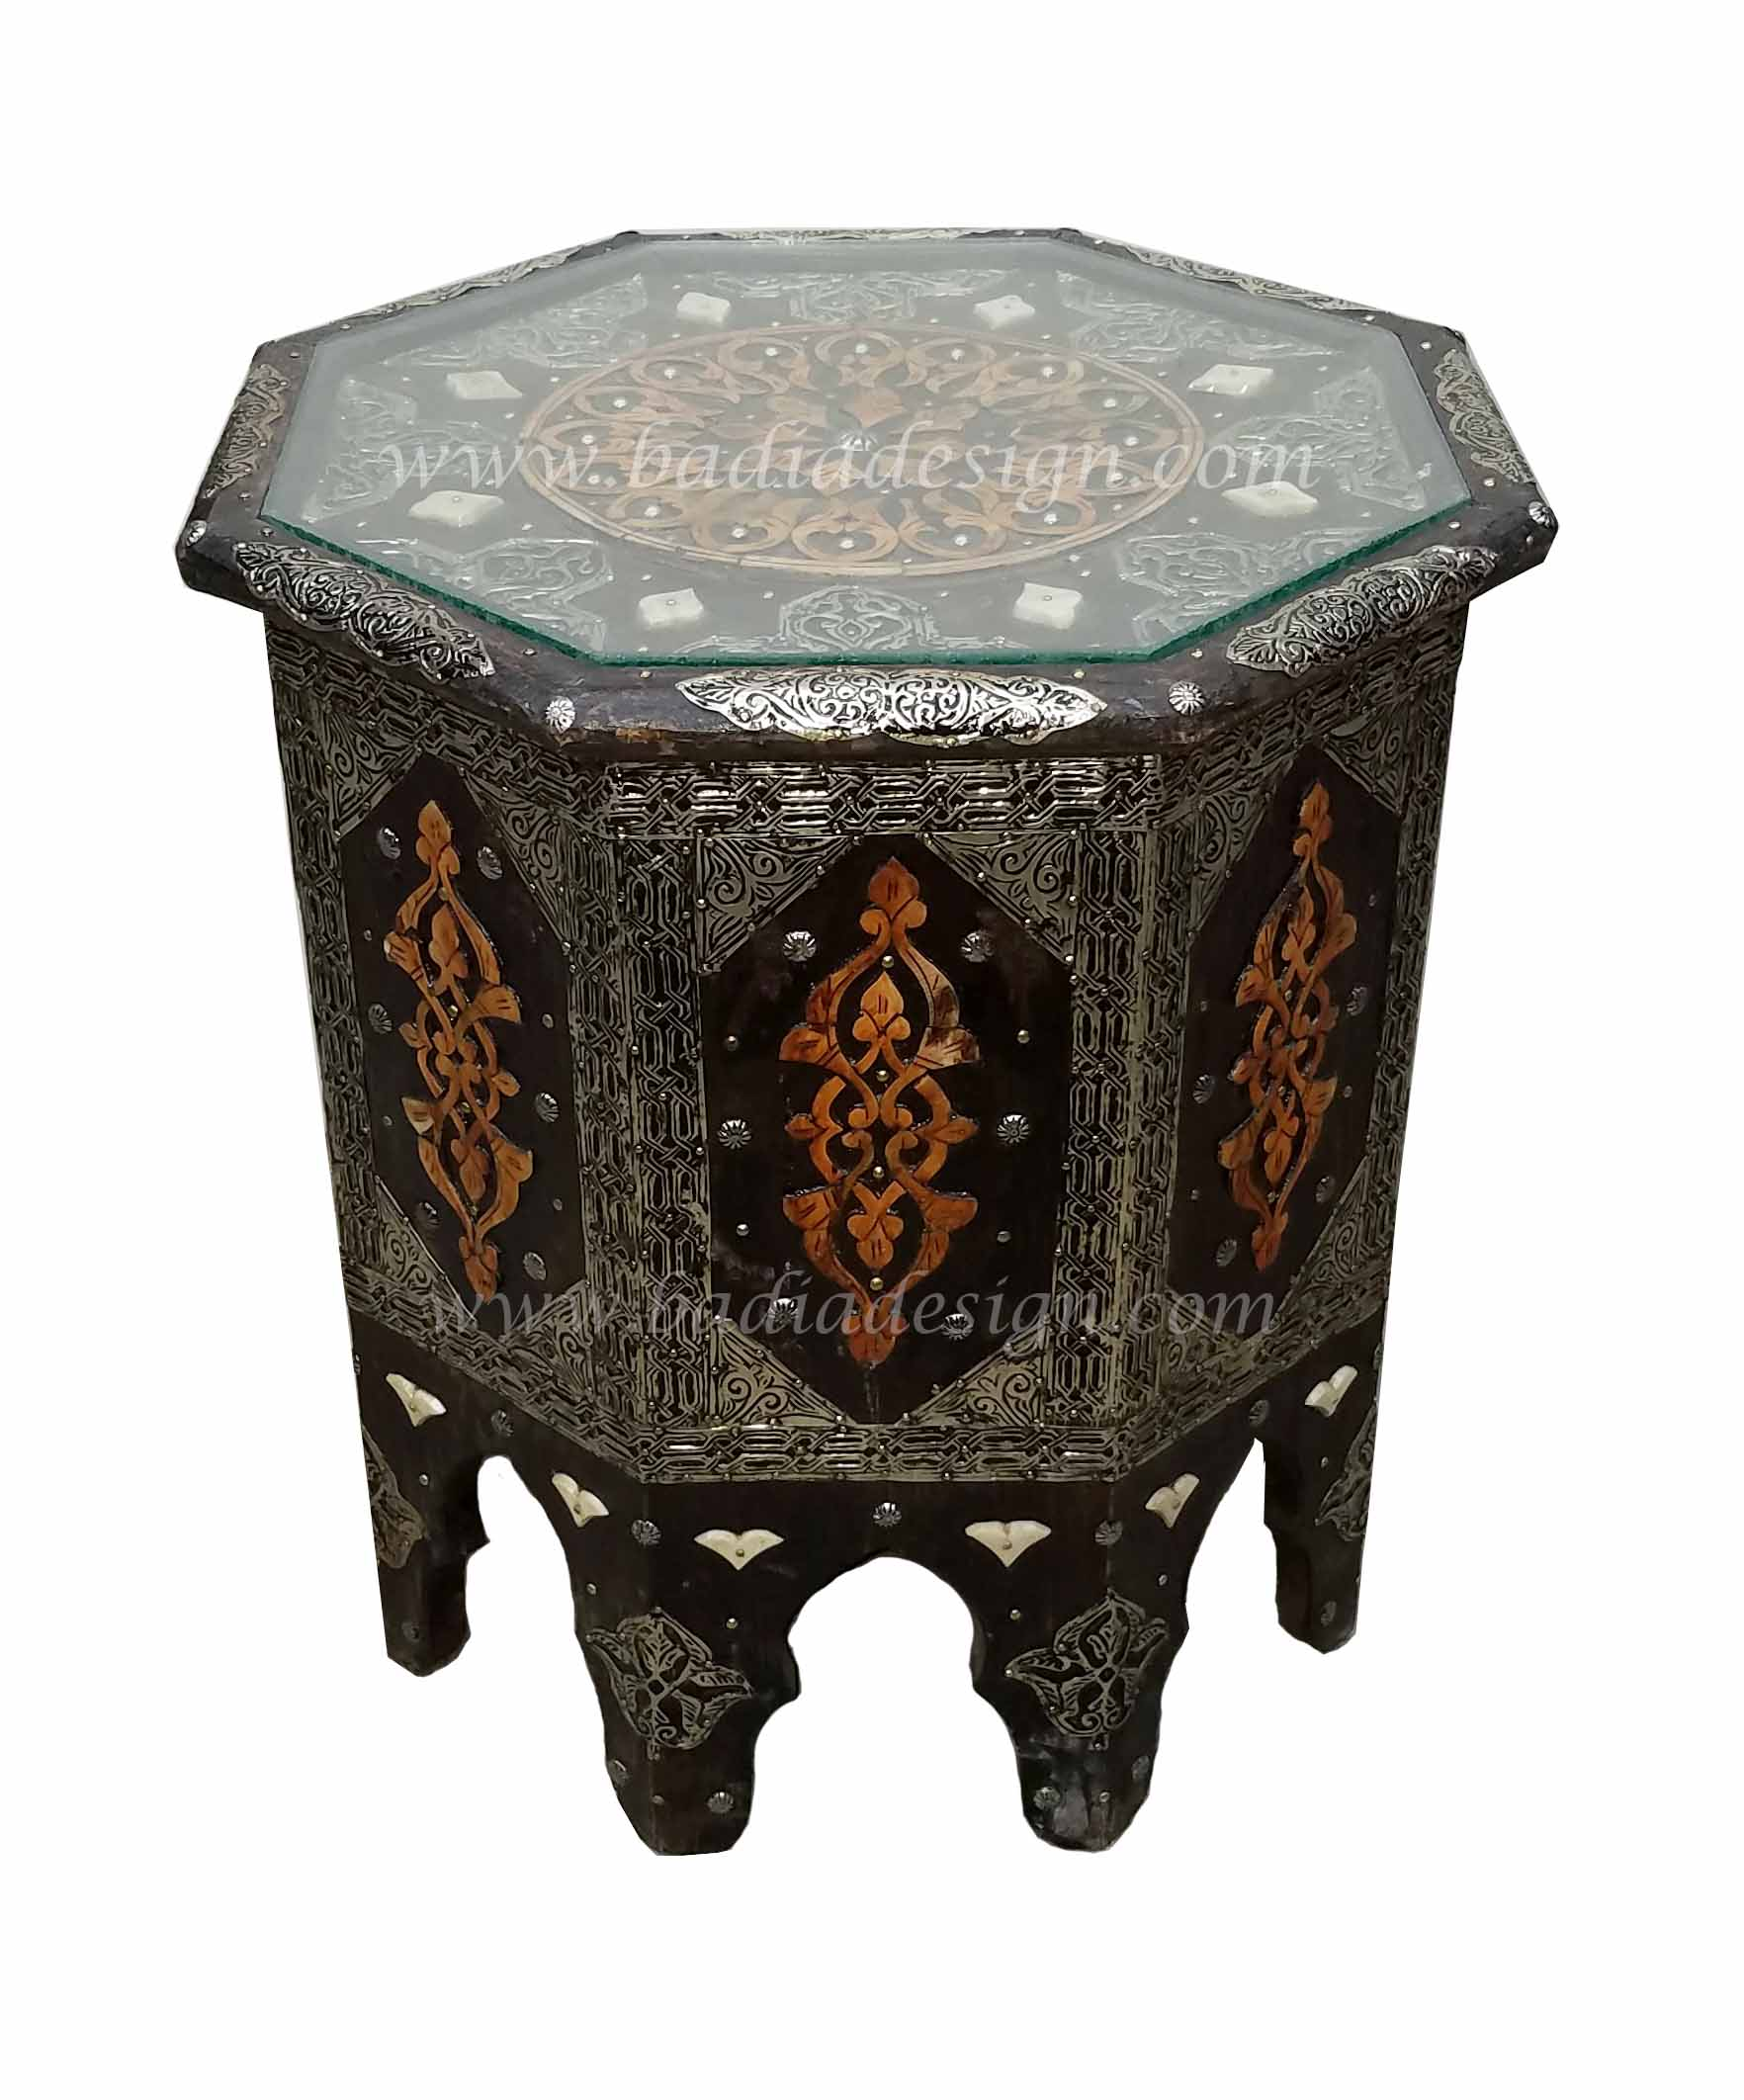 moroccan-metal-and-bone-side-table-mb-st063-1.jpg